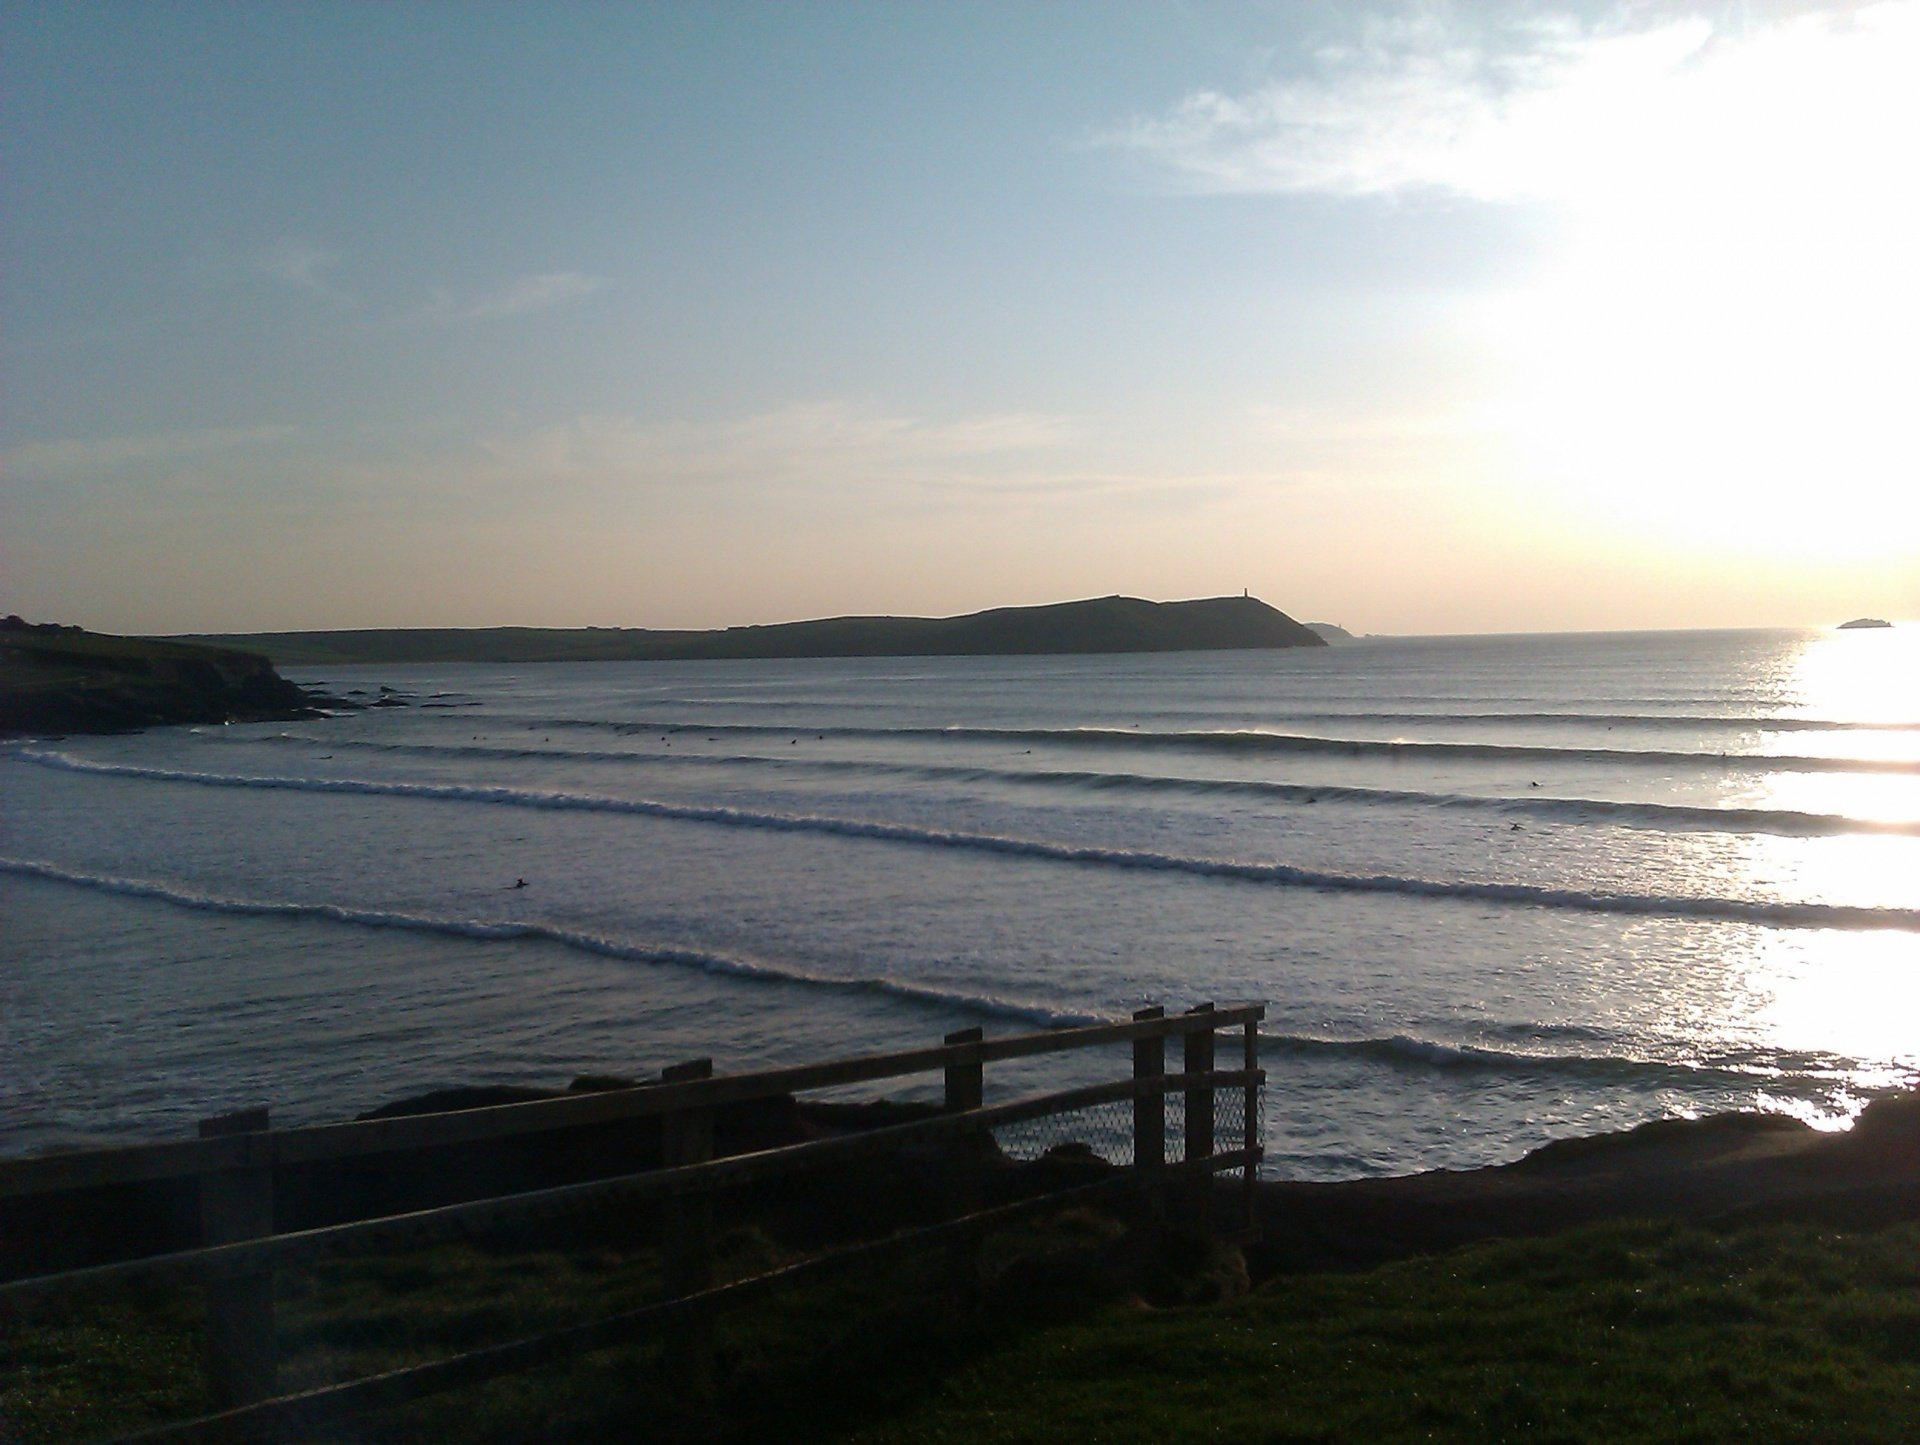 guybennett's photo of Polzeath